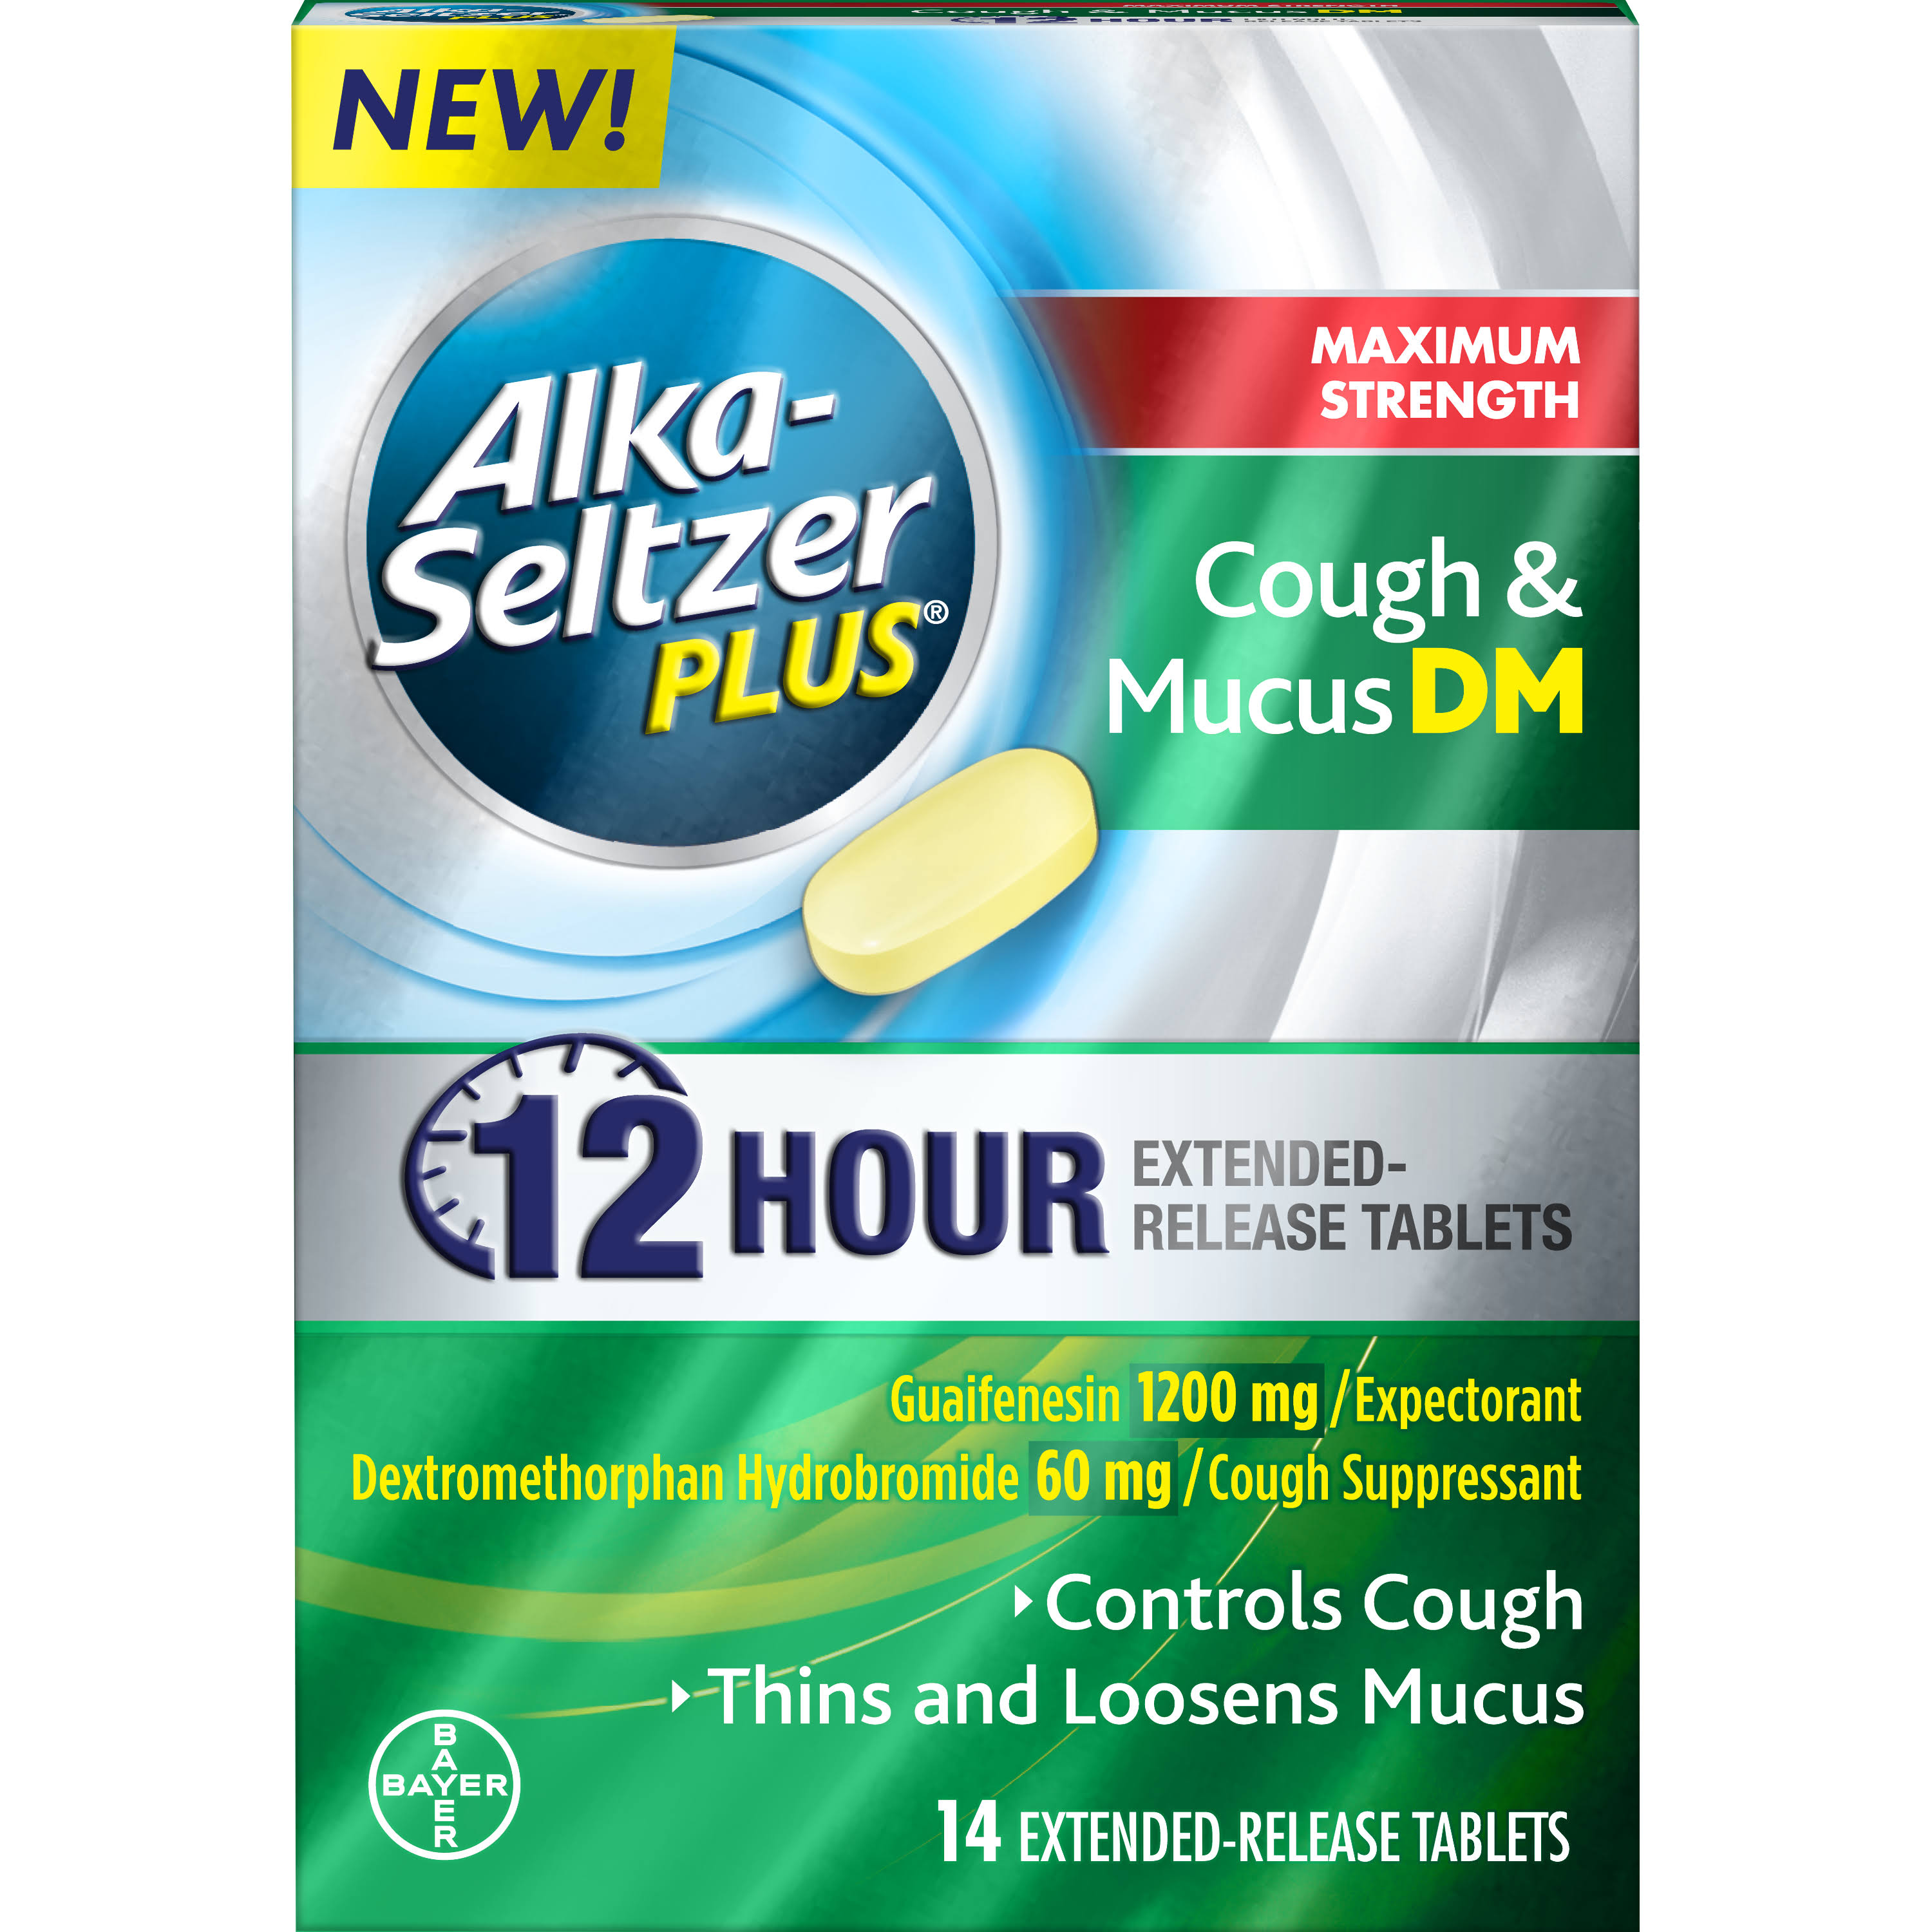 Alka Seltzer Plus Cough & Mucus DM, Maximum Strength, Extended-Release Tablets - 14 tablets